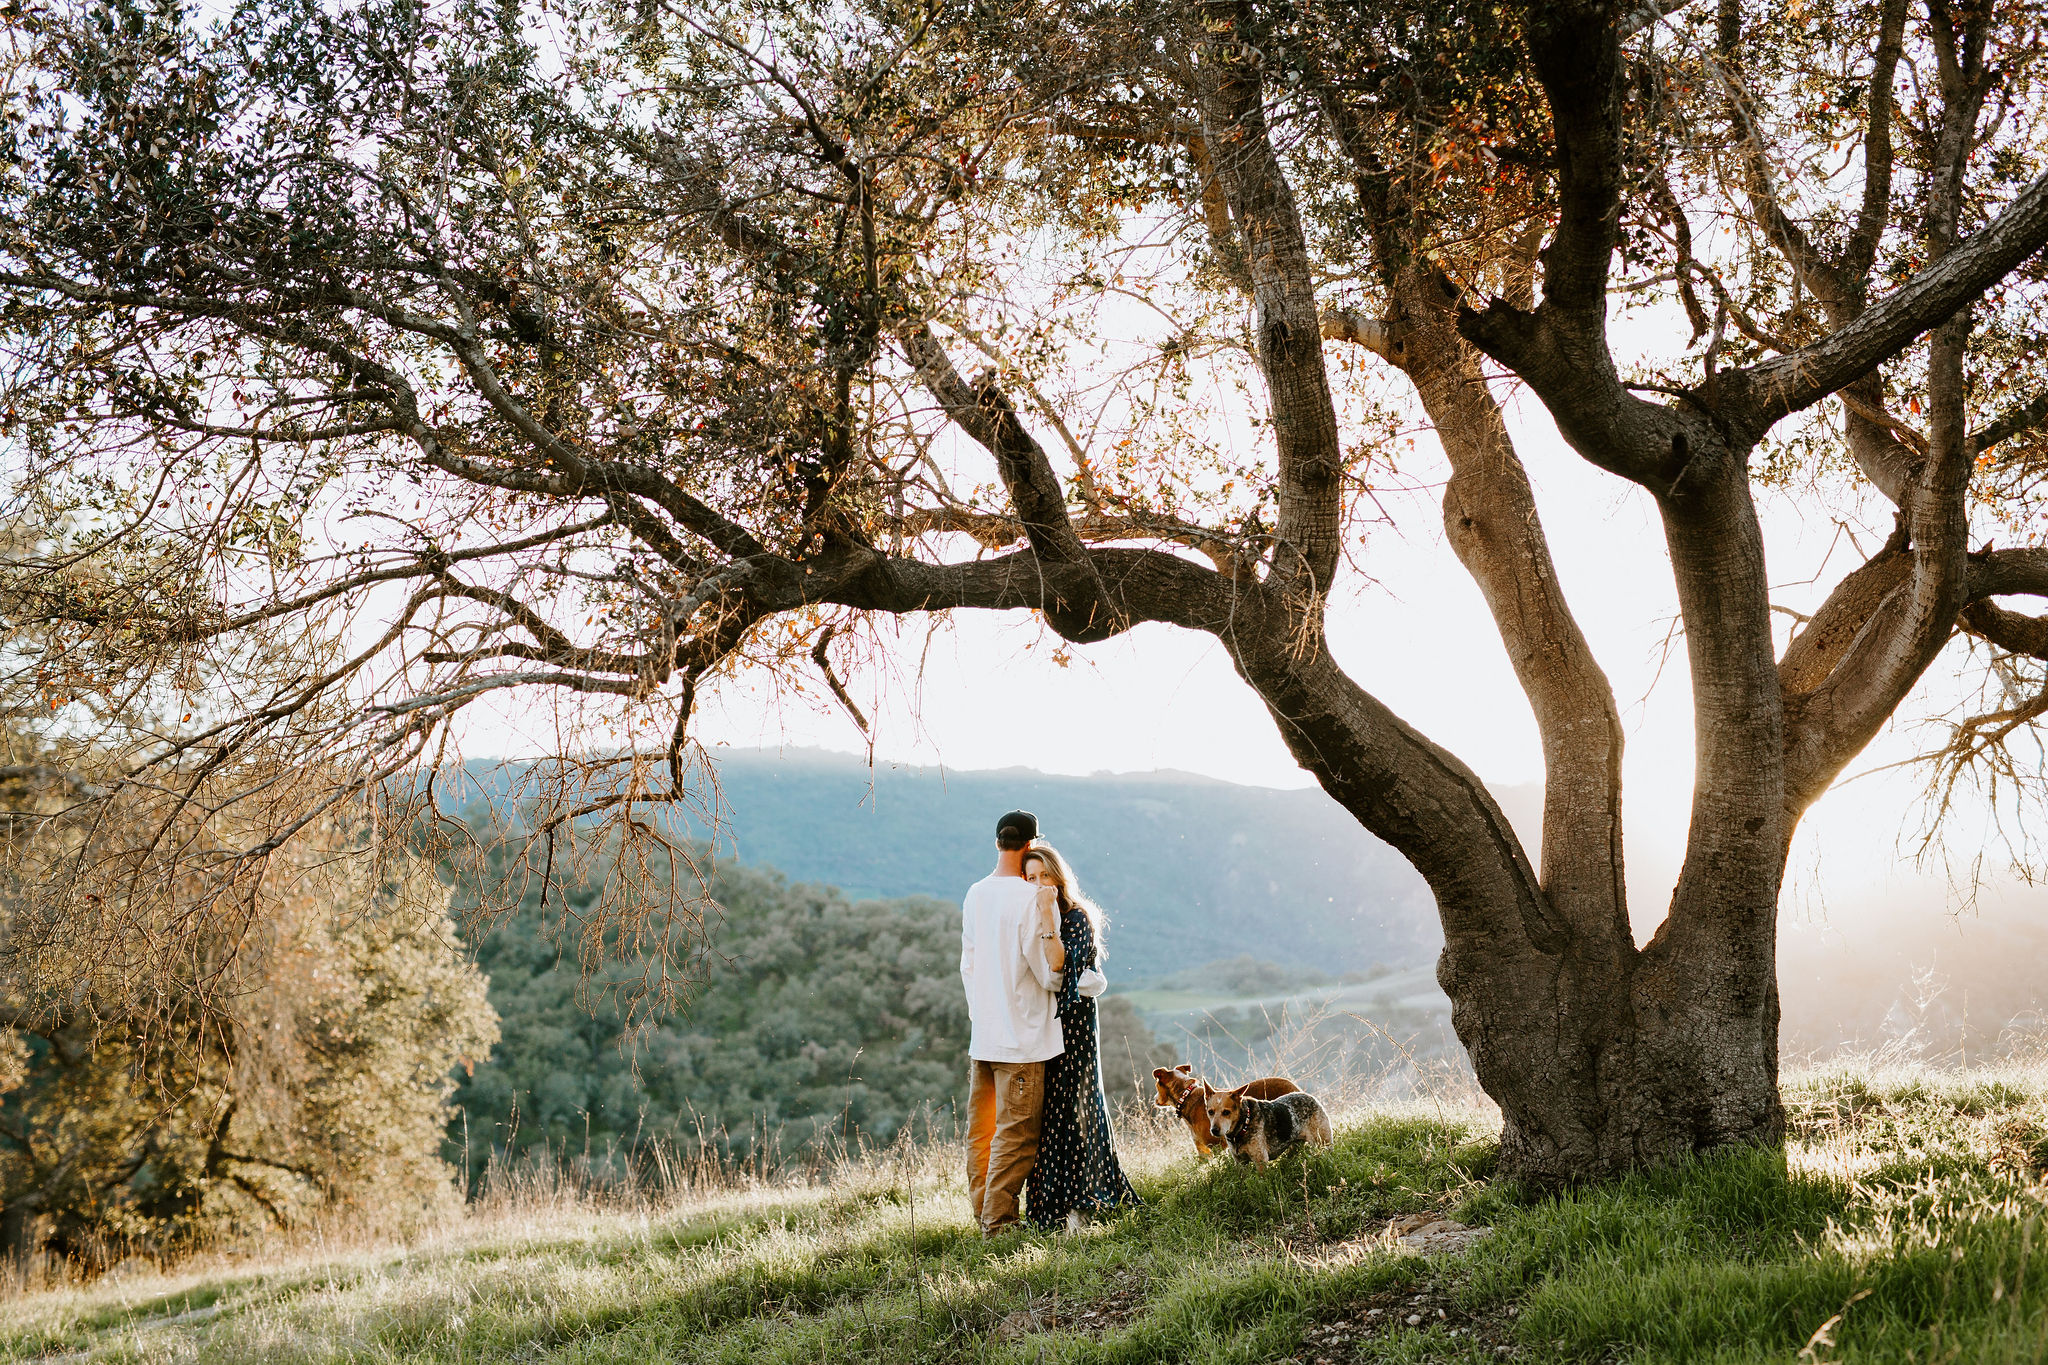 OjaiEngagementSession_Geoff&LyndsiPhotography_Eveline&Scotty81.jpg